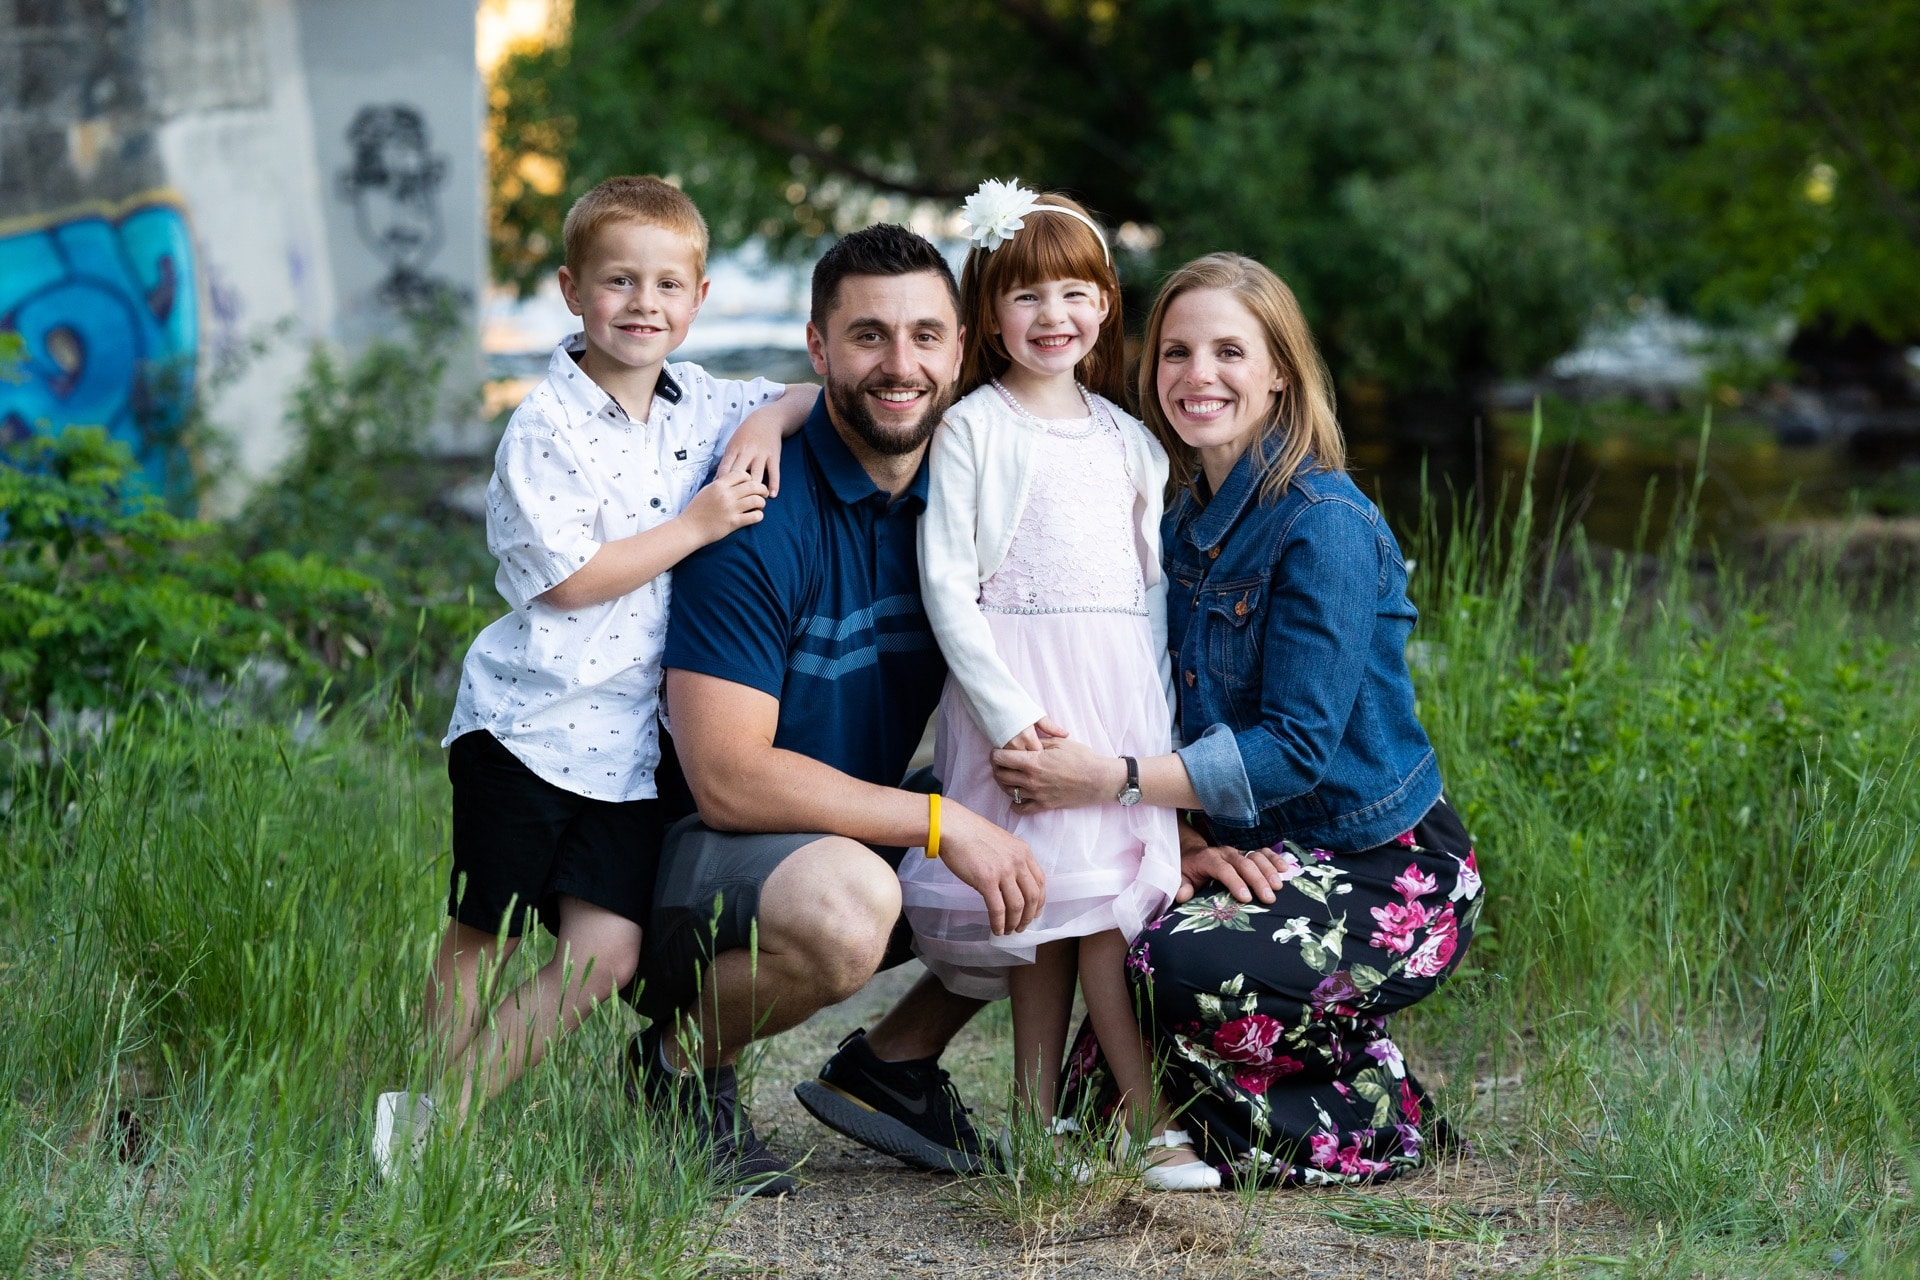 professional family photo photographer in Spokane, WA